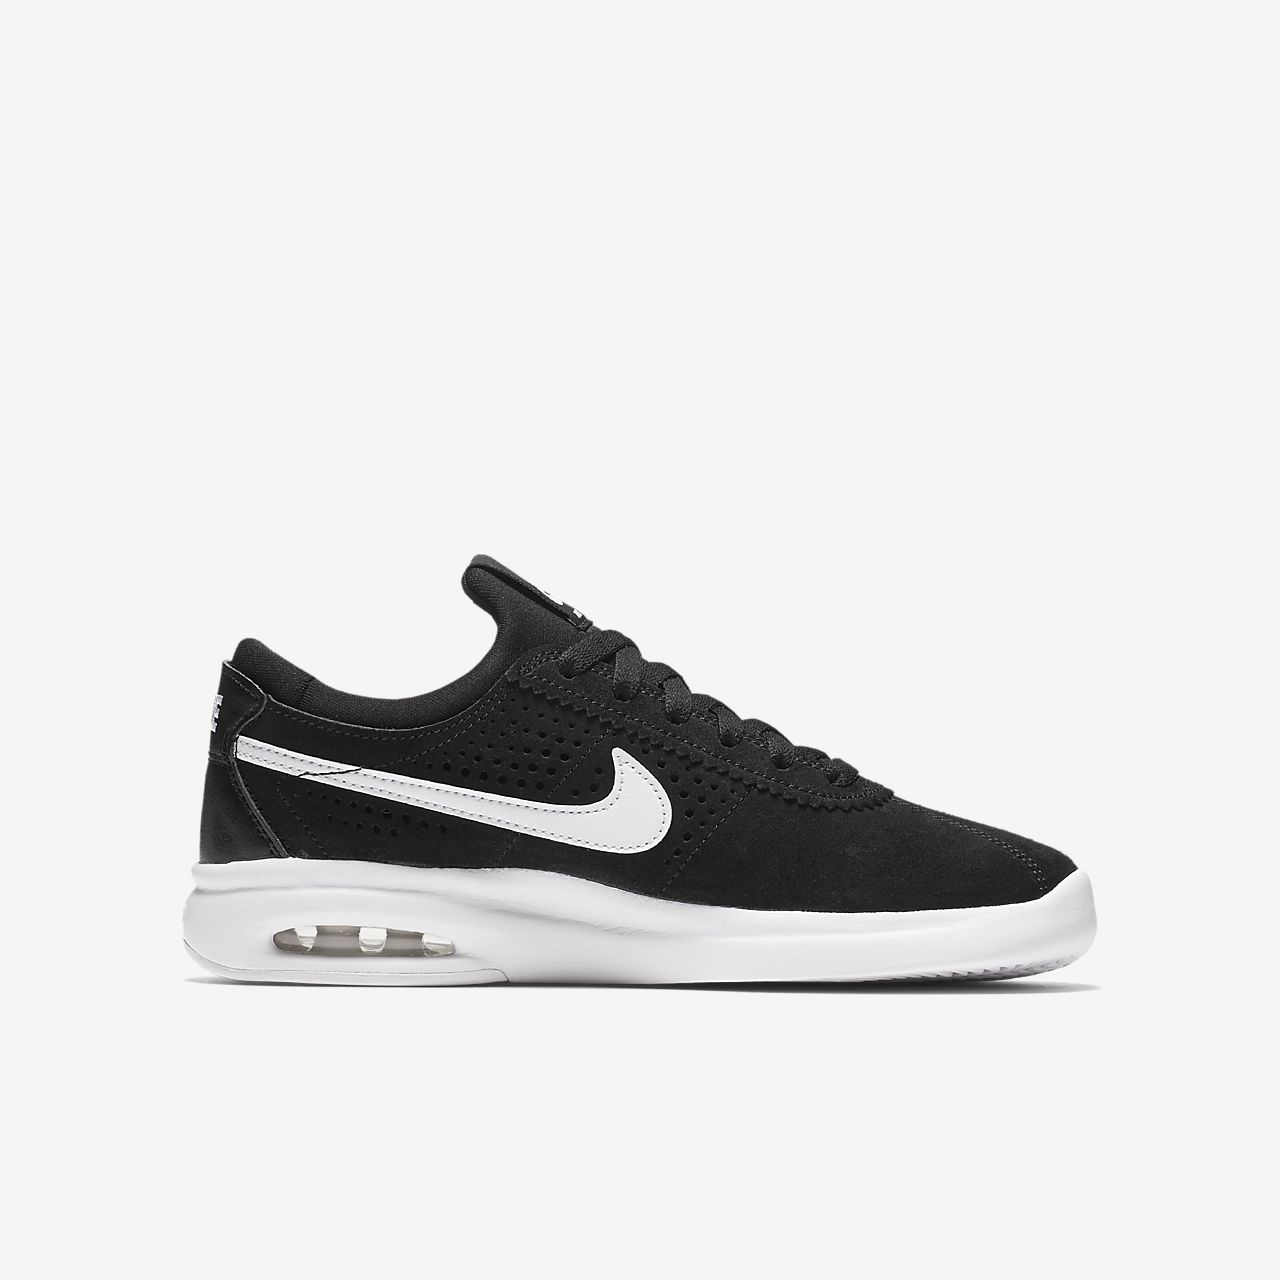 Nike SB Air Max Bruin Vapor Men's Skateboarding Shoes White iU3465O